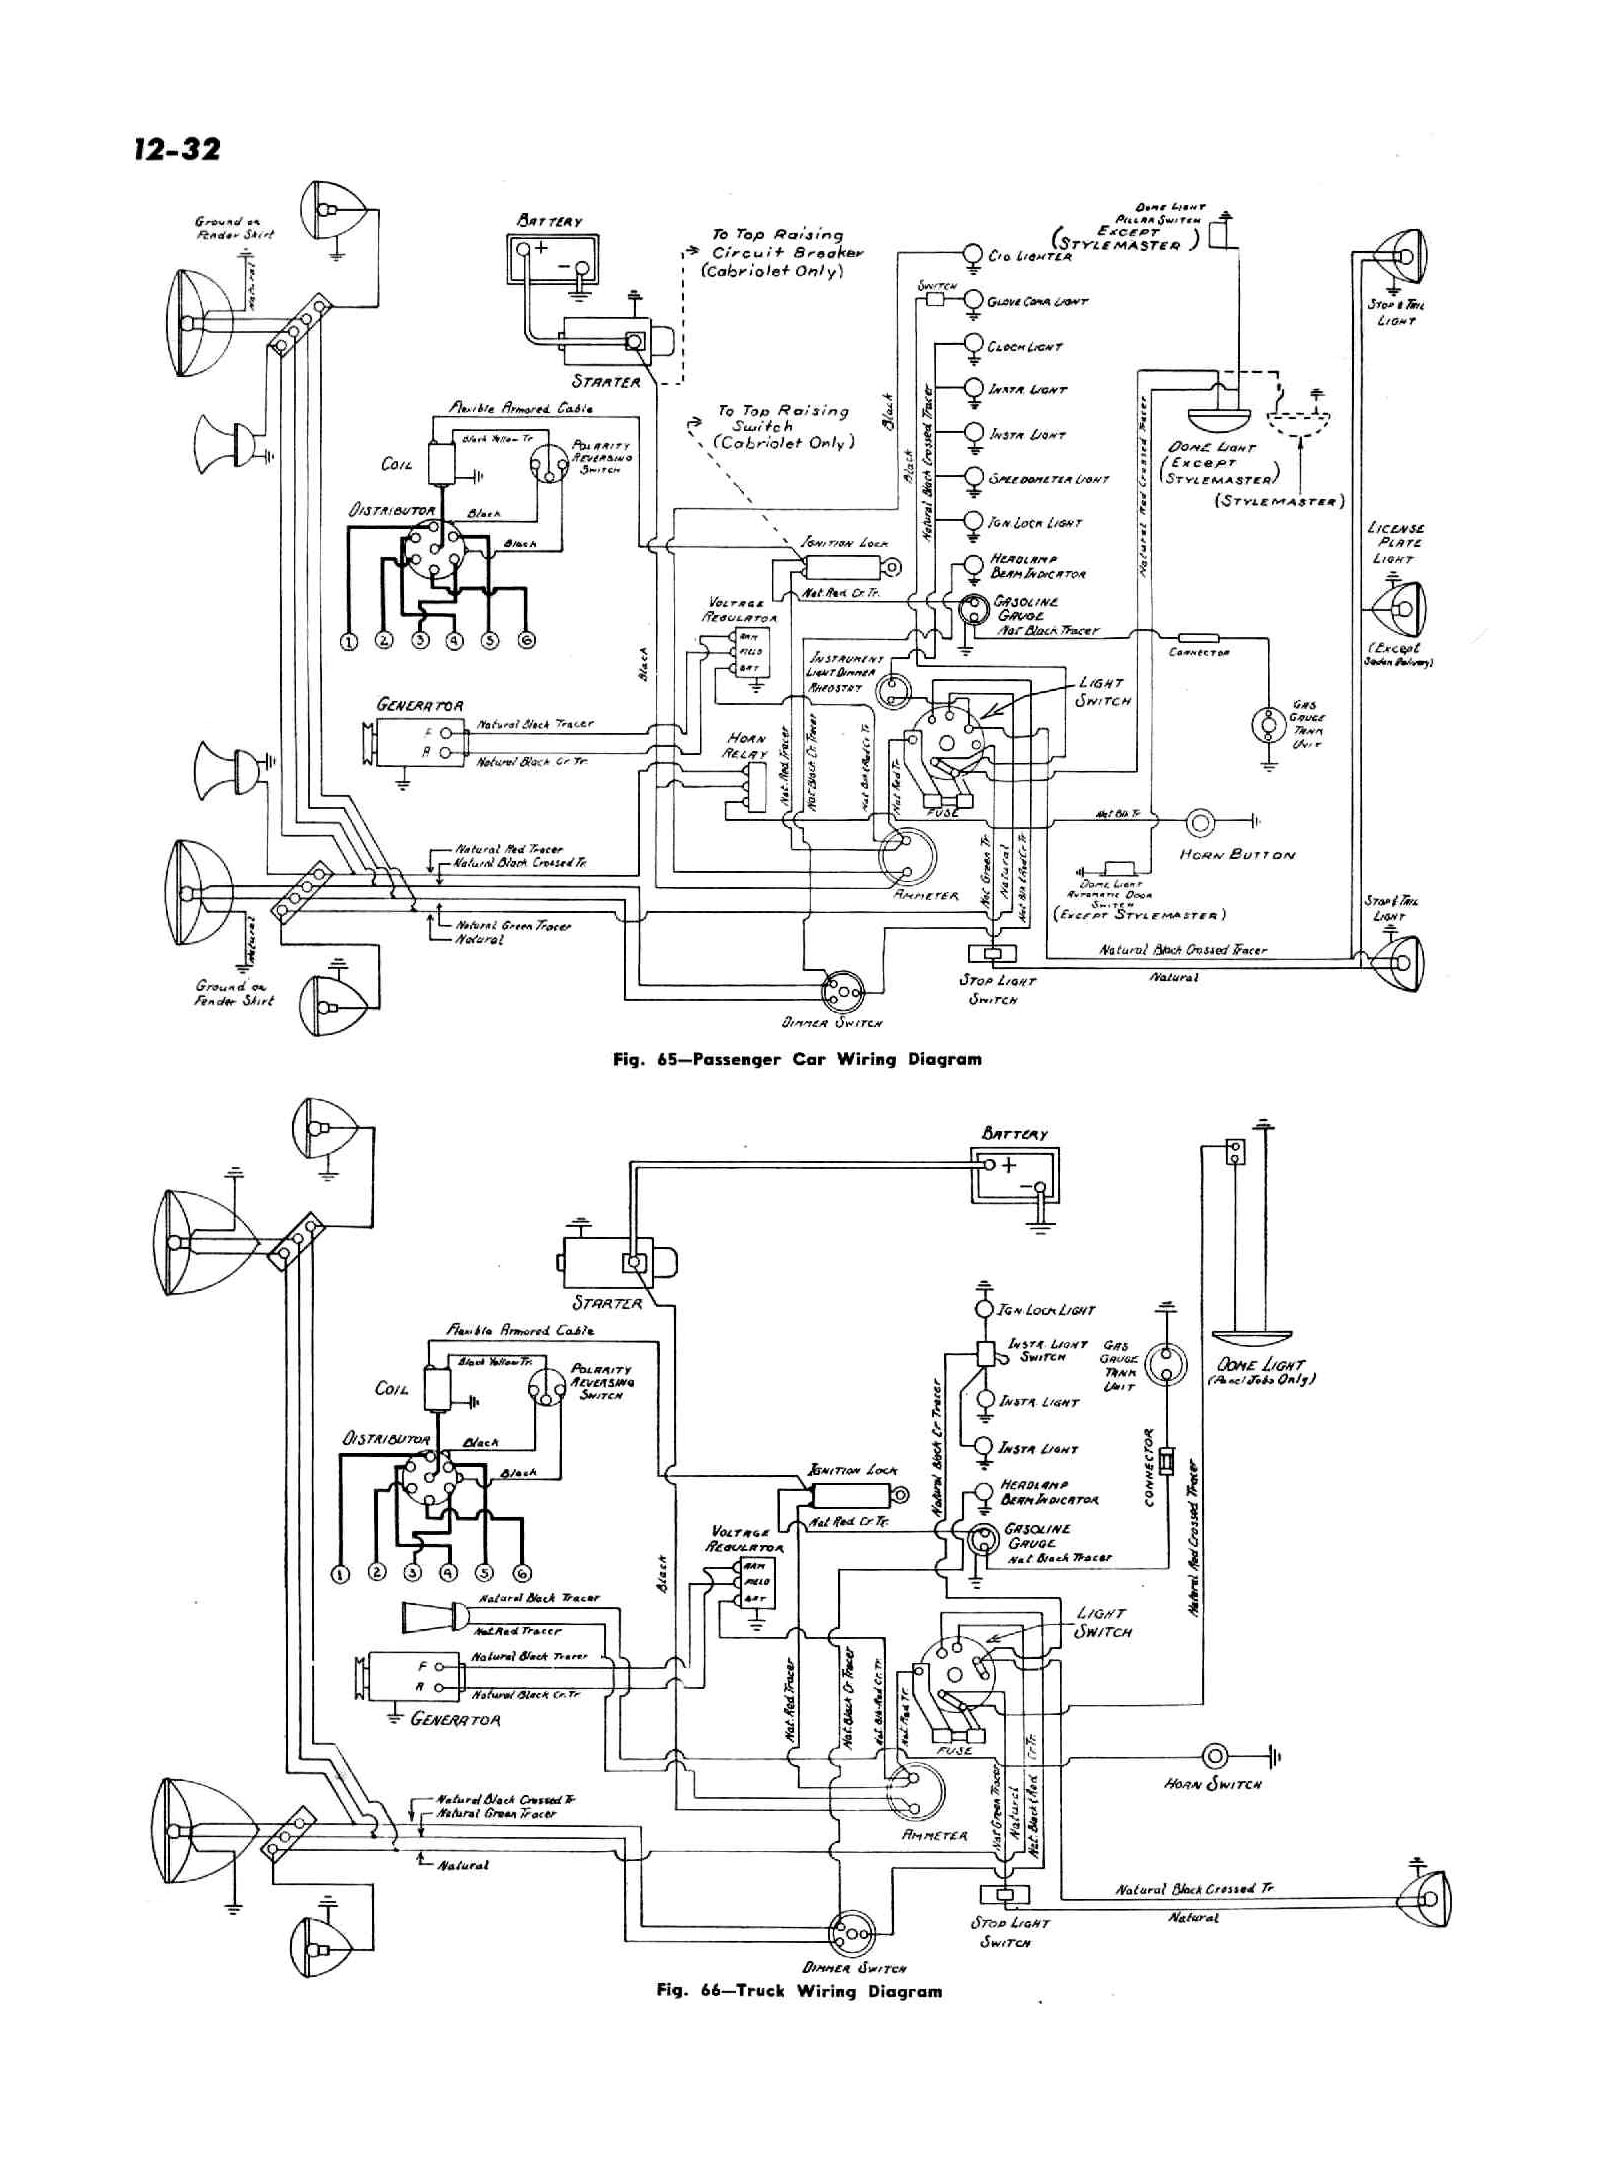 Magnificent For 1942 Chevrolet 11 2 Ton Lc 4X2 Truckcar Wiring Diagram Wiring Digital Resources Indicompassionincorg